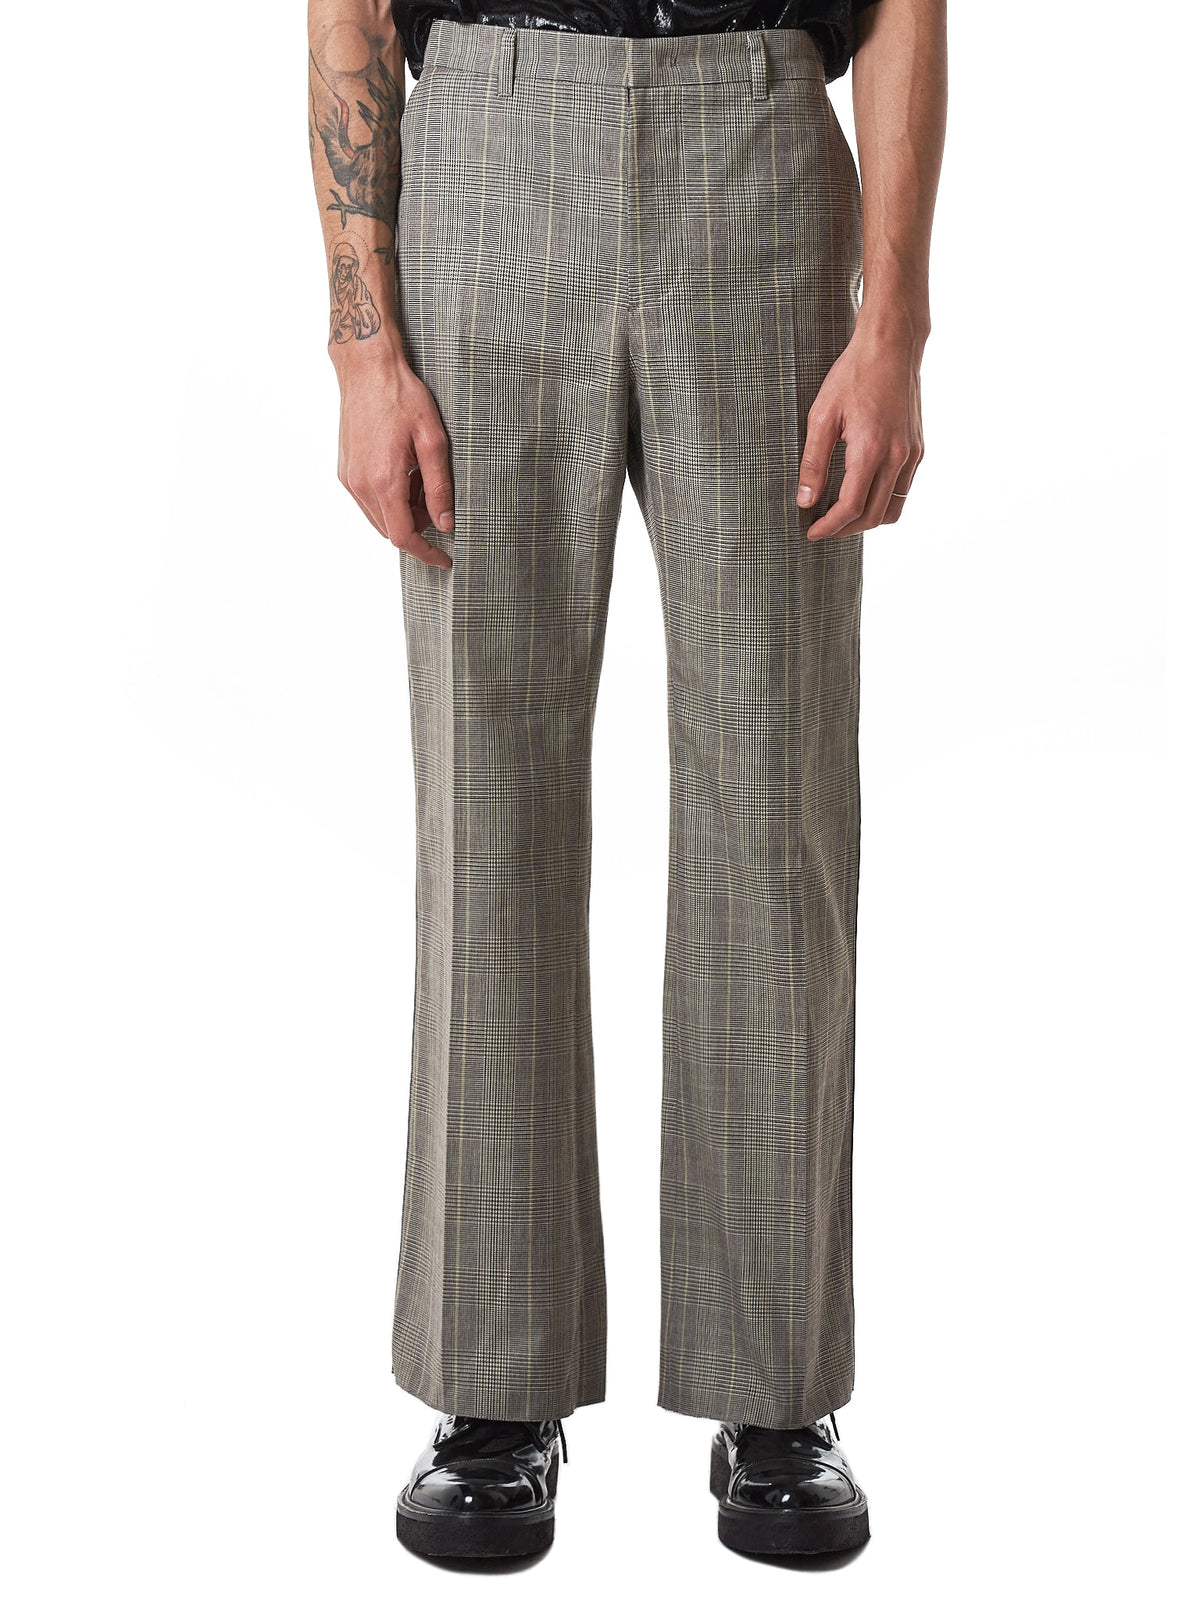 NONA9ON Check Trousers - Hlorenzo Front